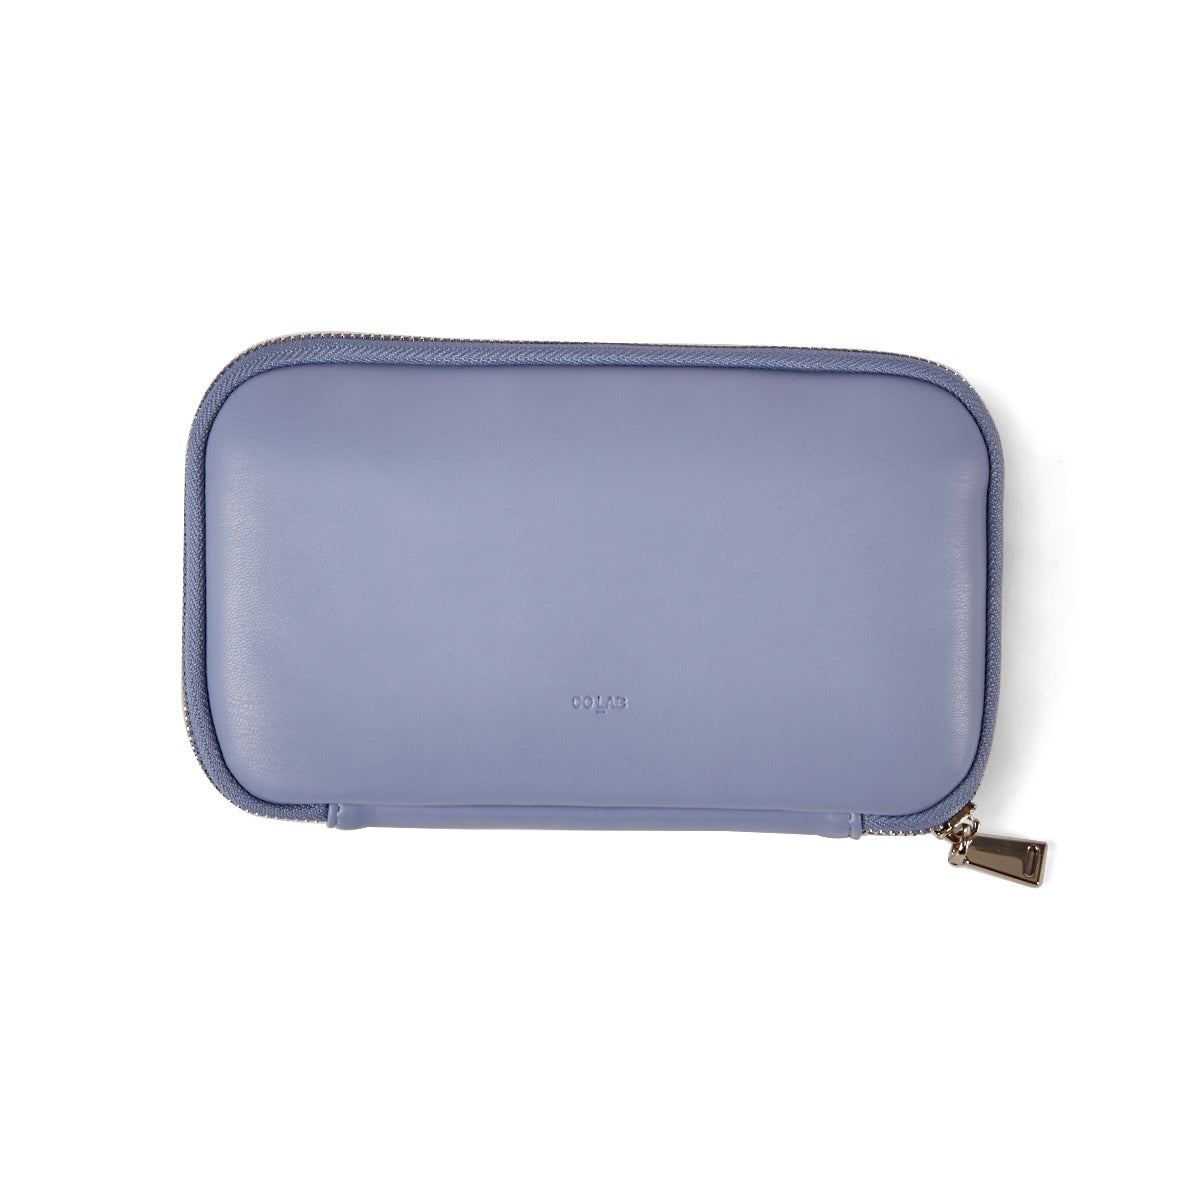 Lds Harlow World periwinkle wallet